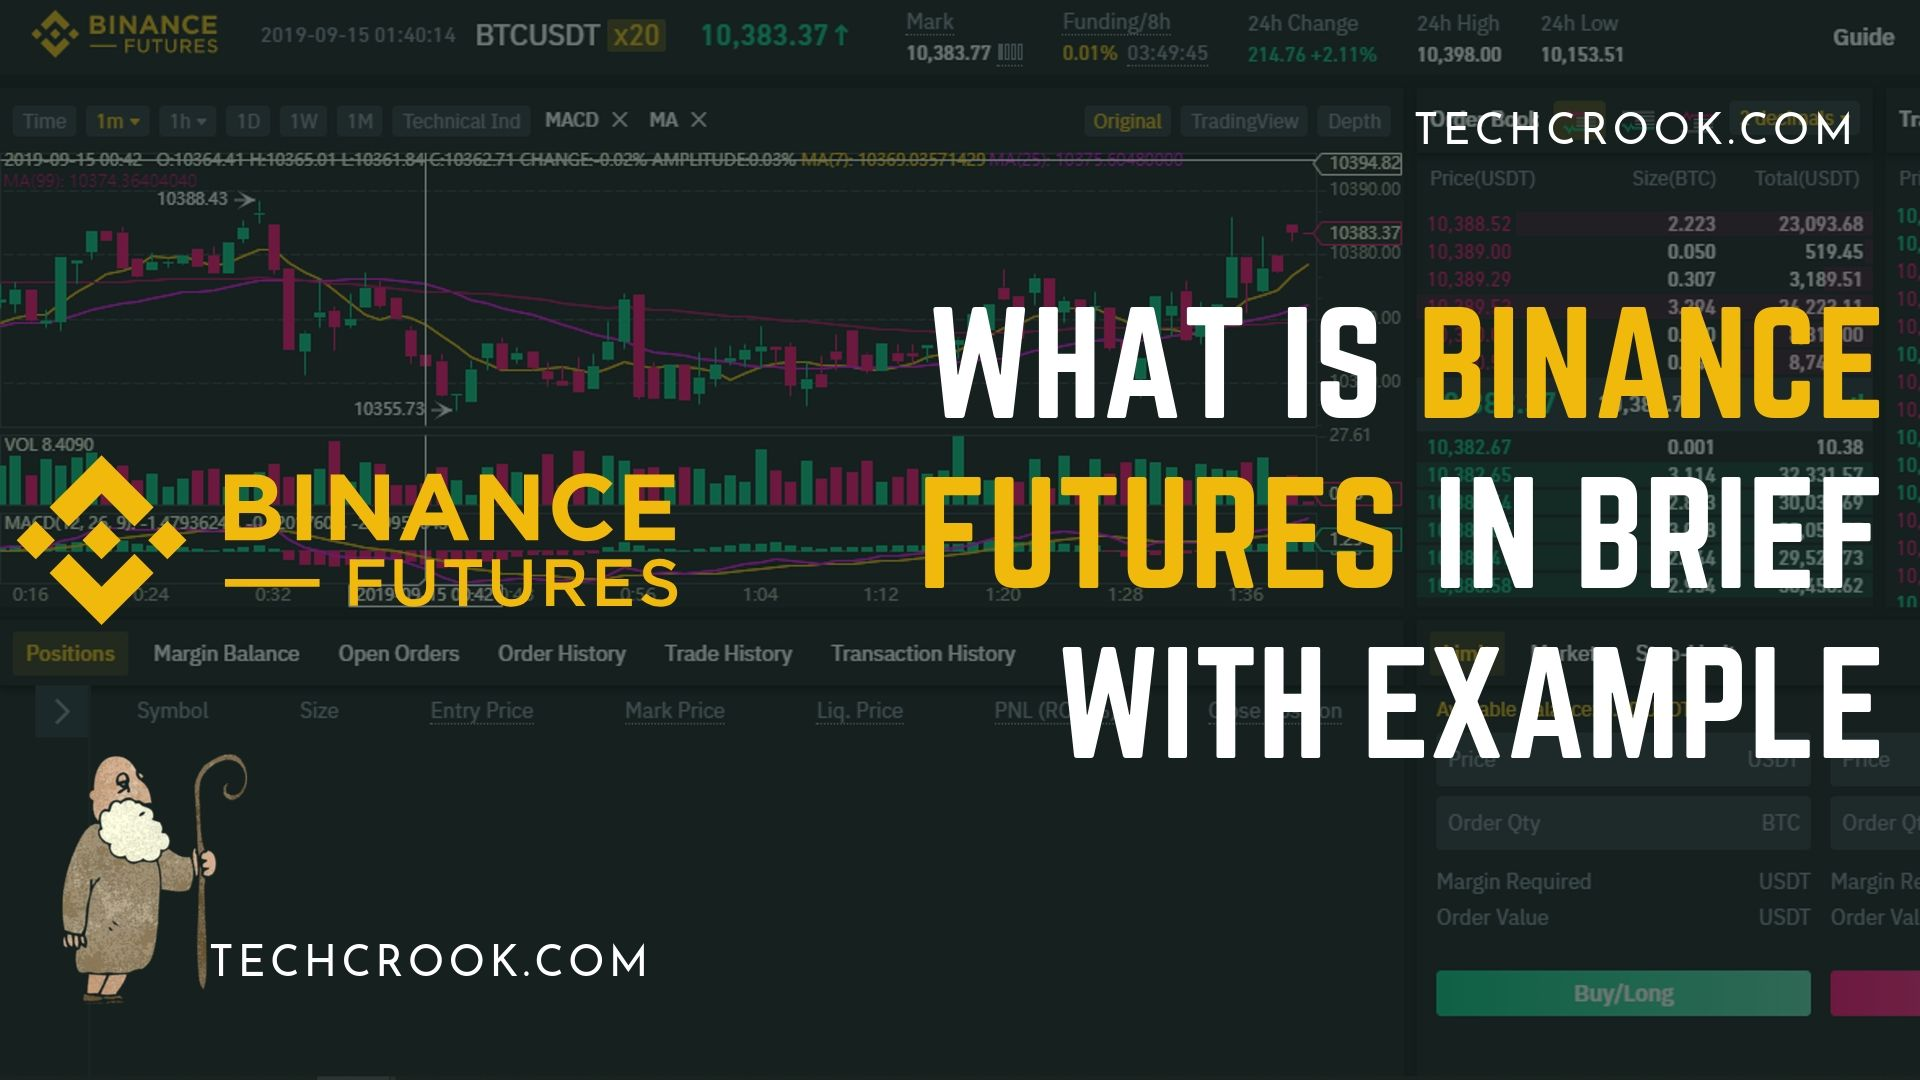 Binance futures with easy example understanding